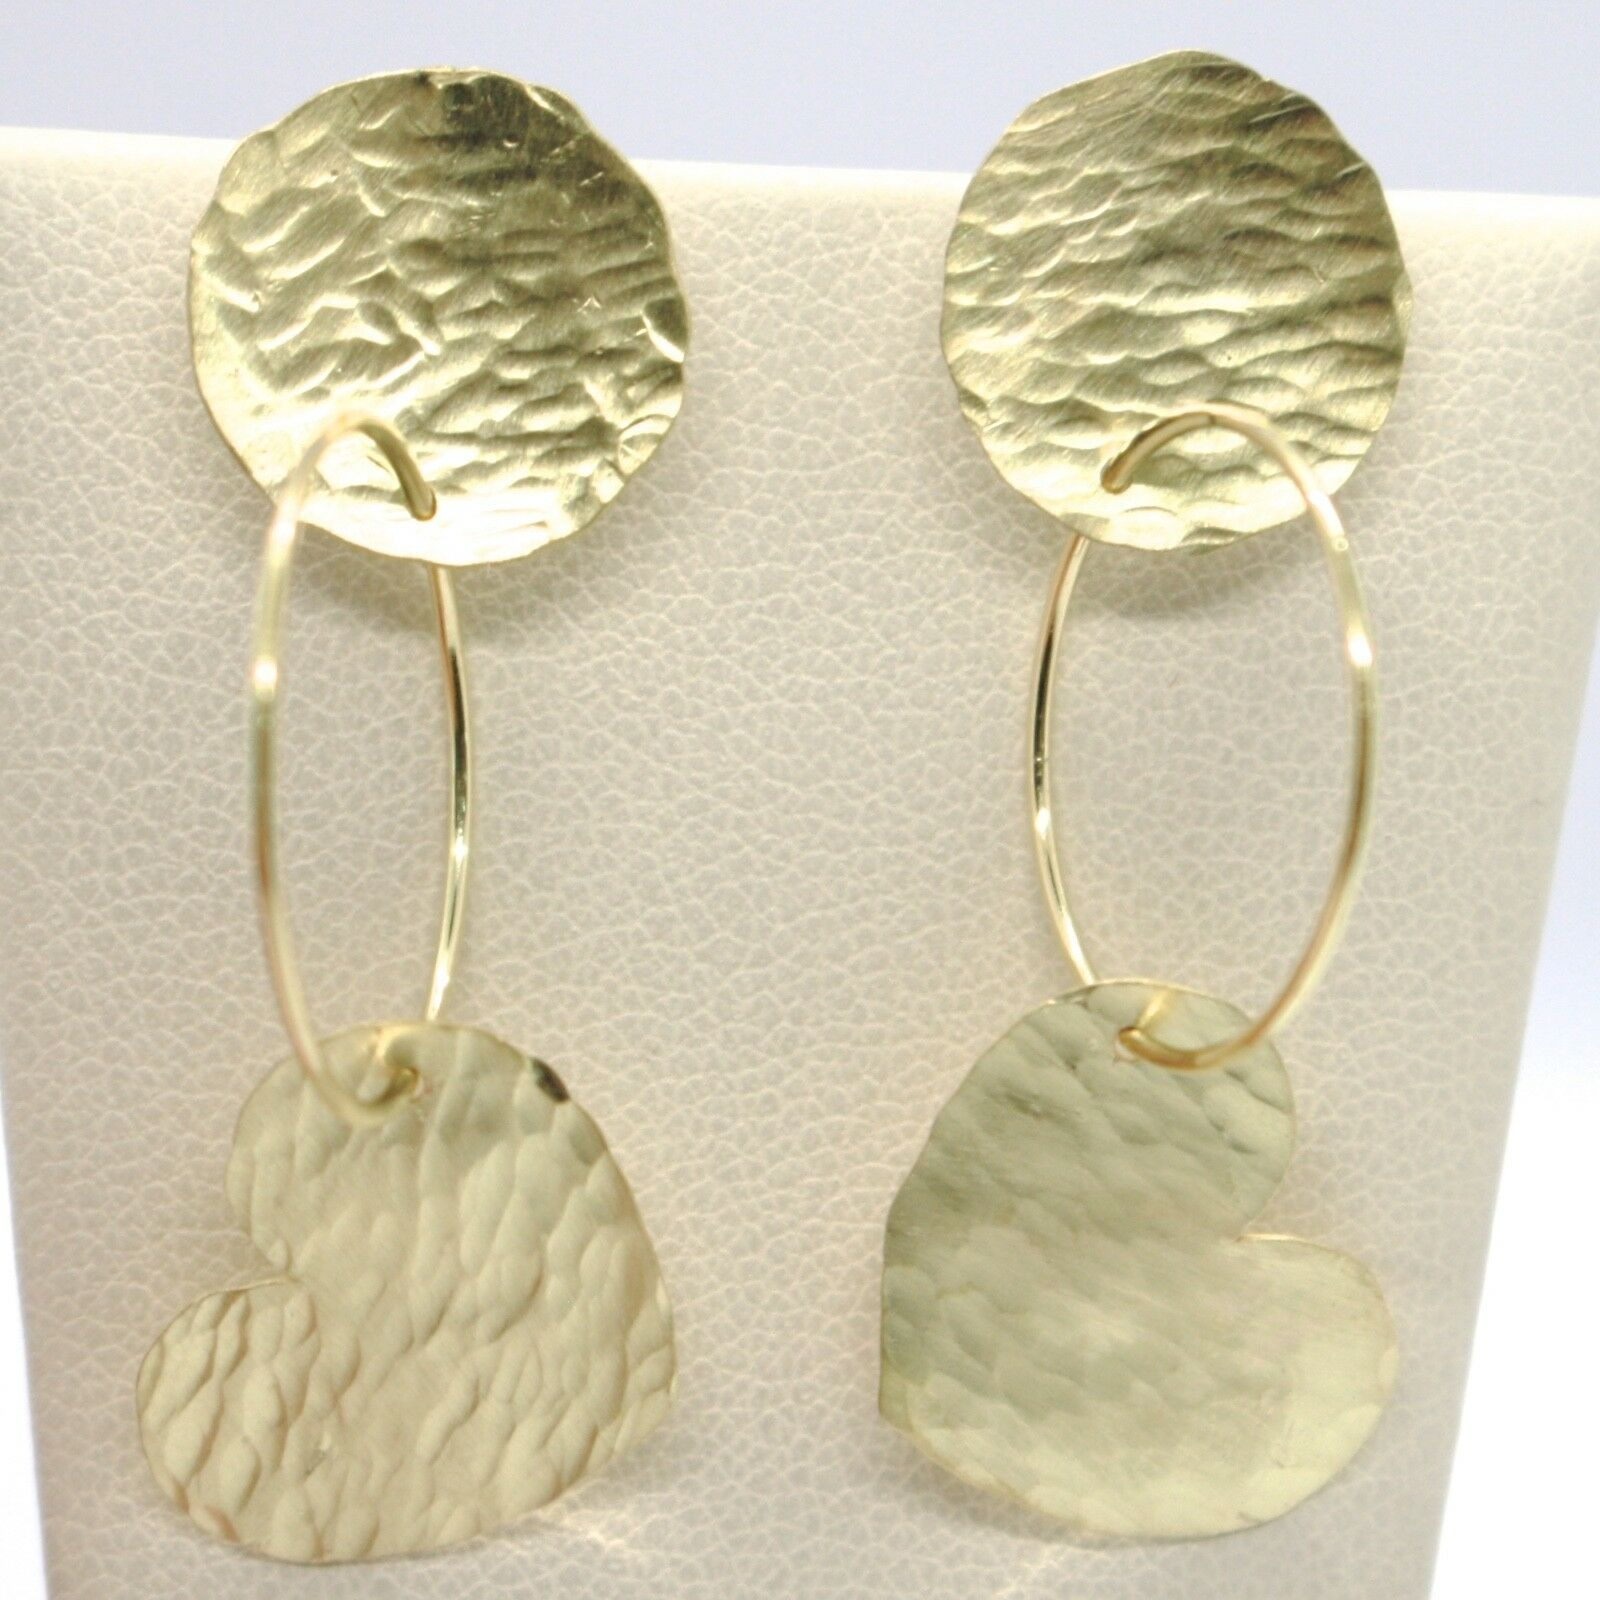 18K YELLOW GOLD FINELY WORKED AND HAMMERED PENDANT DISC CIRCLE HEART EARRINGS